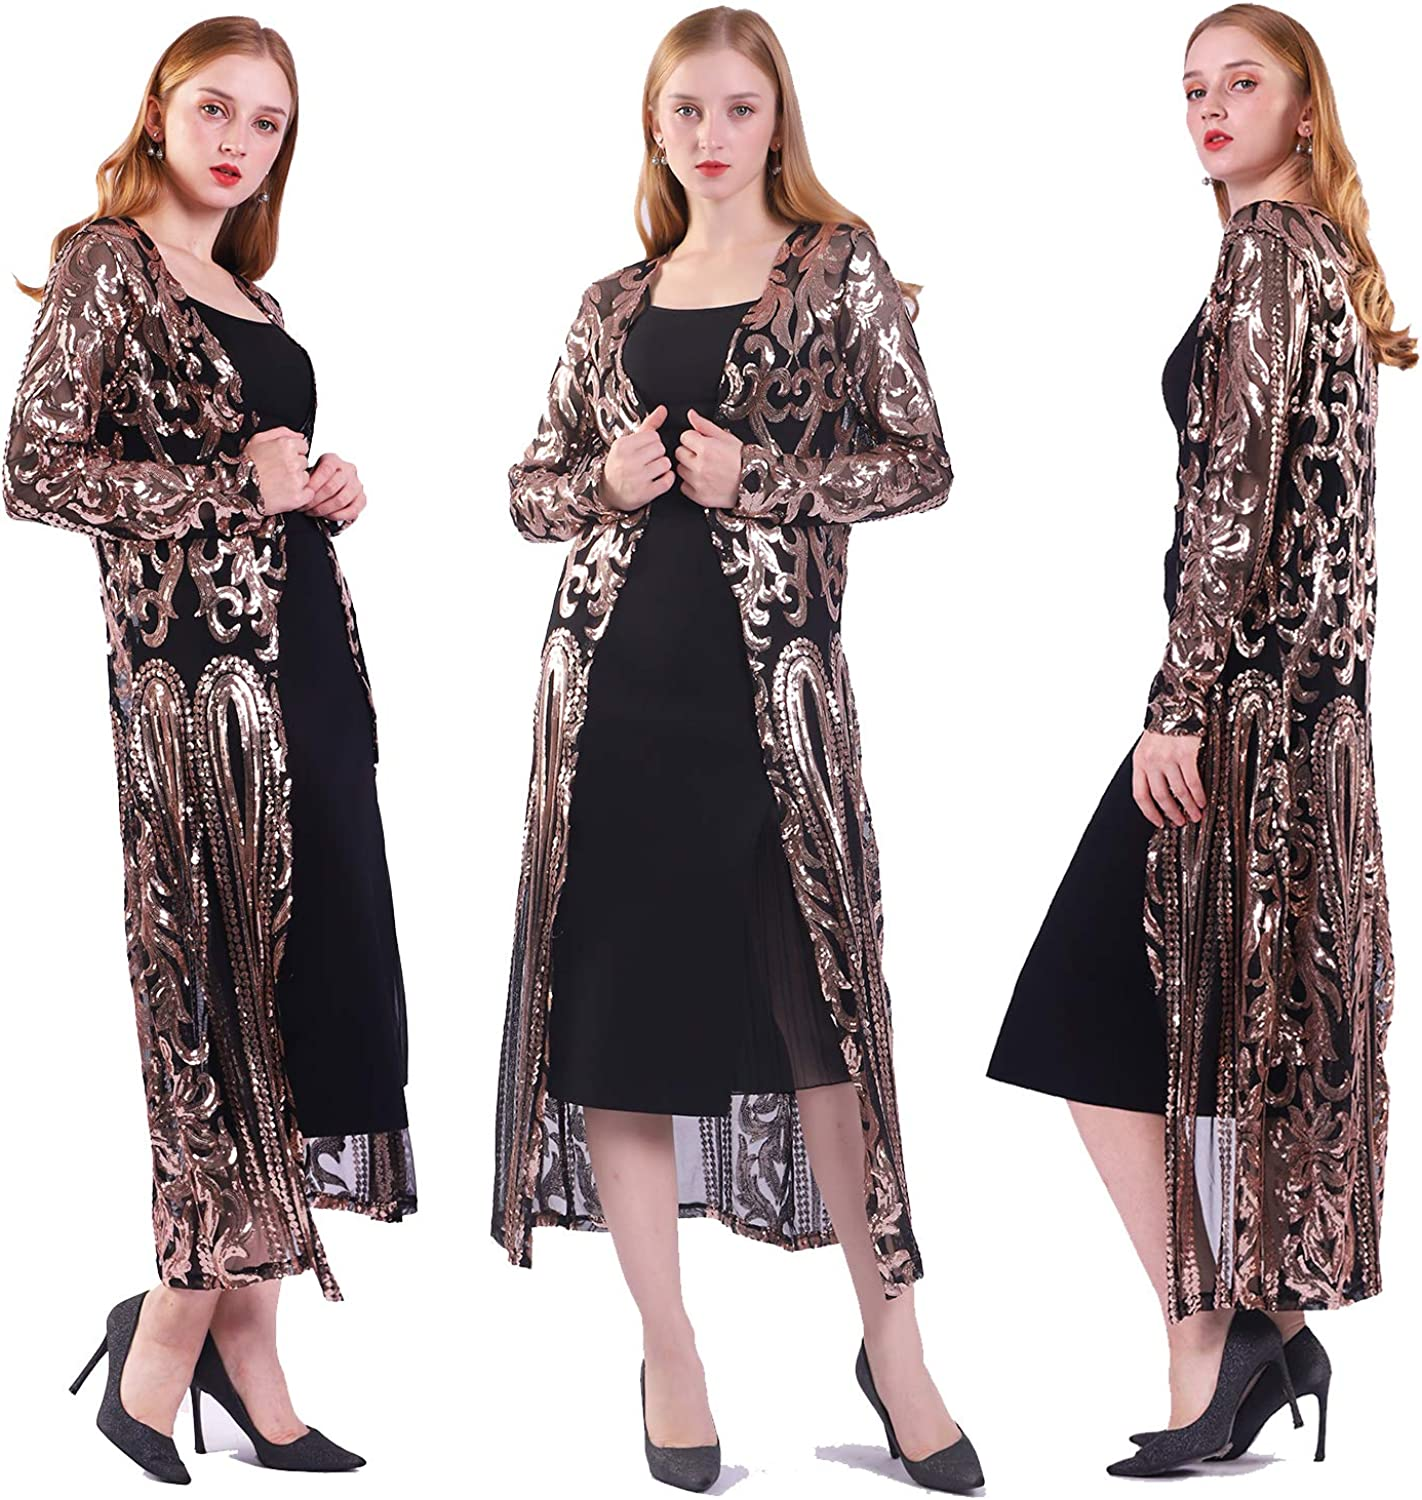 Women's Sequin Cardigan Summer Cover Up Dress Glitter Sparkle Open Front Coat Dresses Duster for Evening Prom